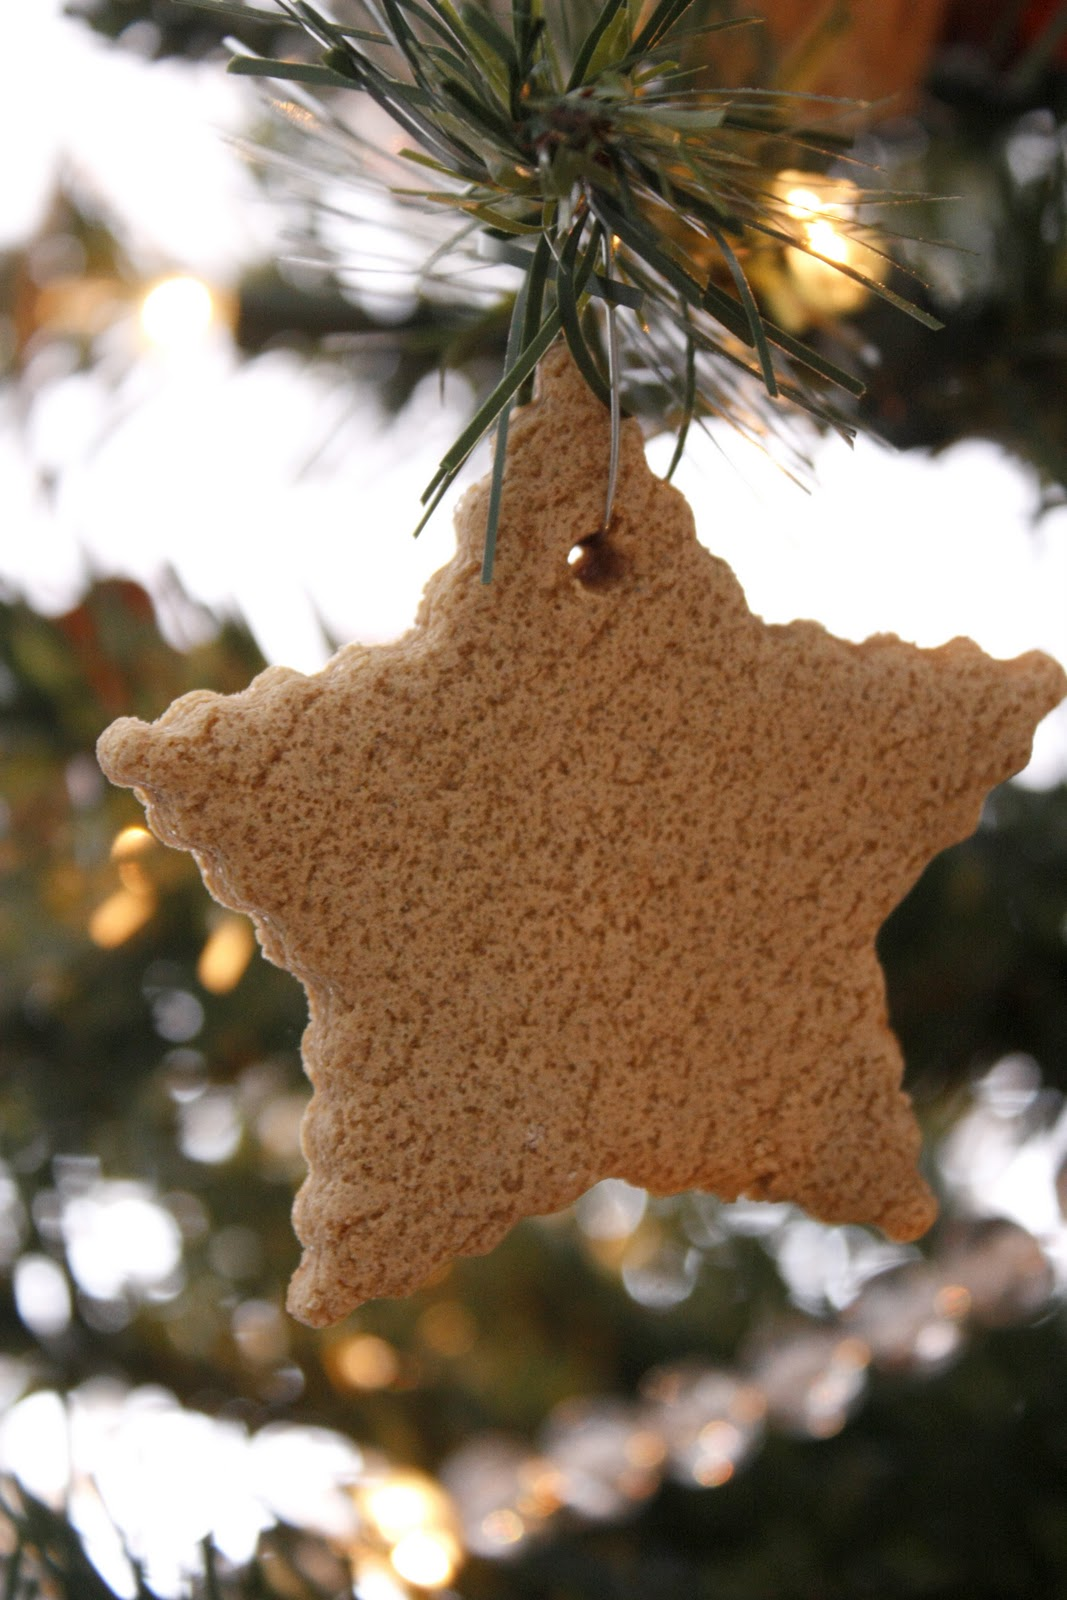 Gingerbread man ornaments - Not Having Any Glitter Or A Snowflake Cookie Cutter And Not Wanting To Purchase Anything For This Project I Decided To Make Stars And Gingerbread Men